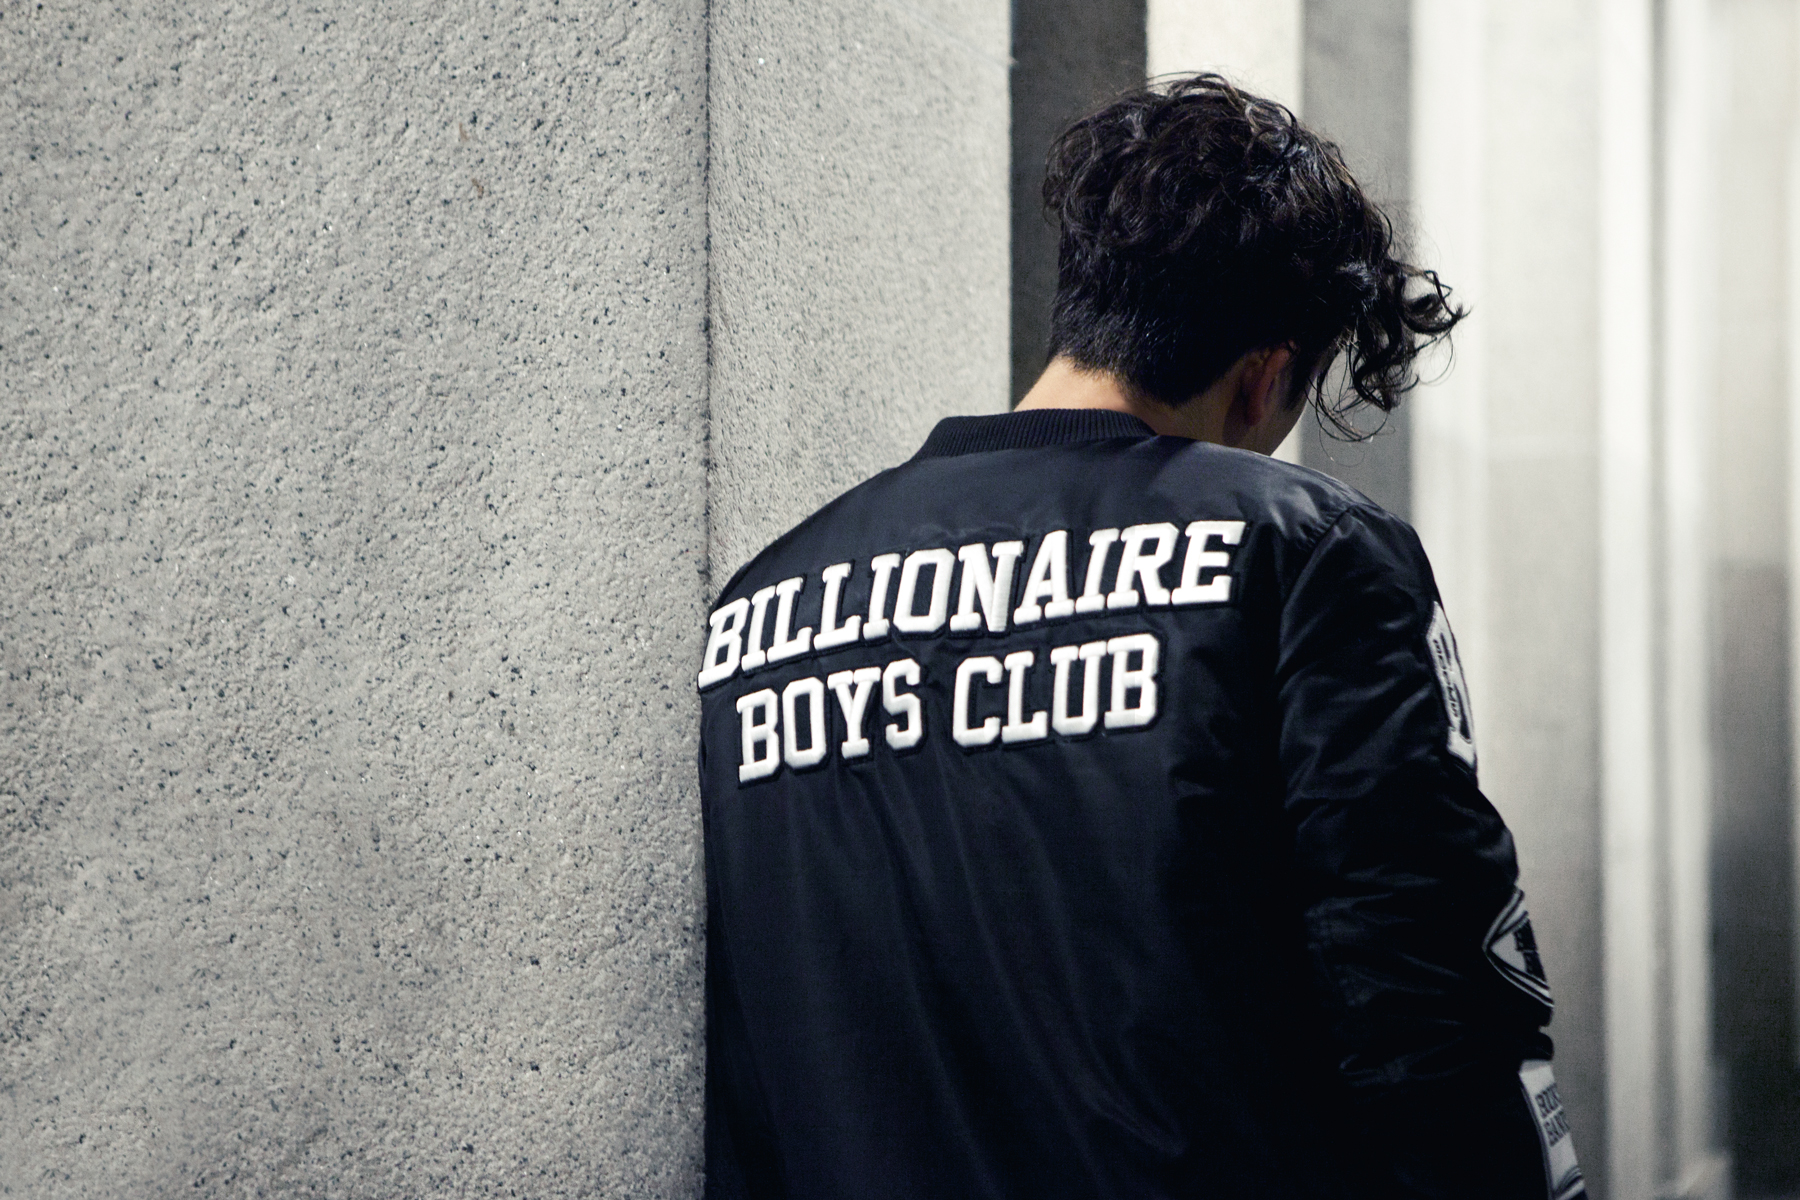 Billionaire Boys Club 2015 Fall/Winter New Arrivals